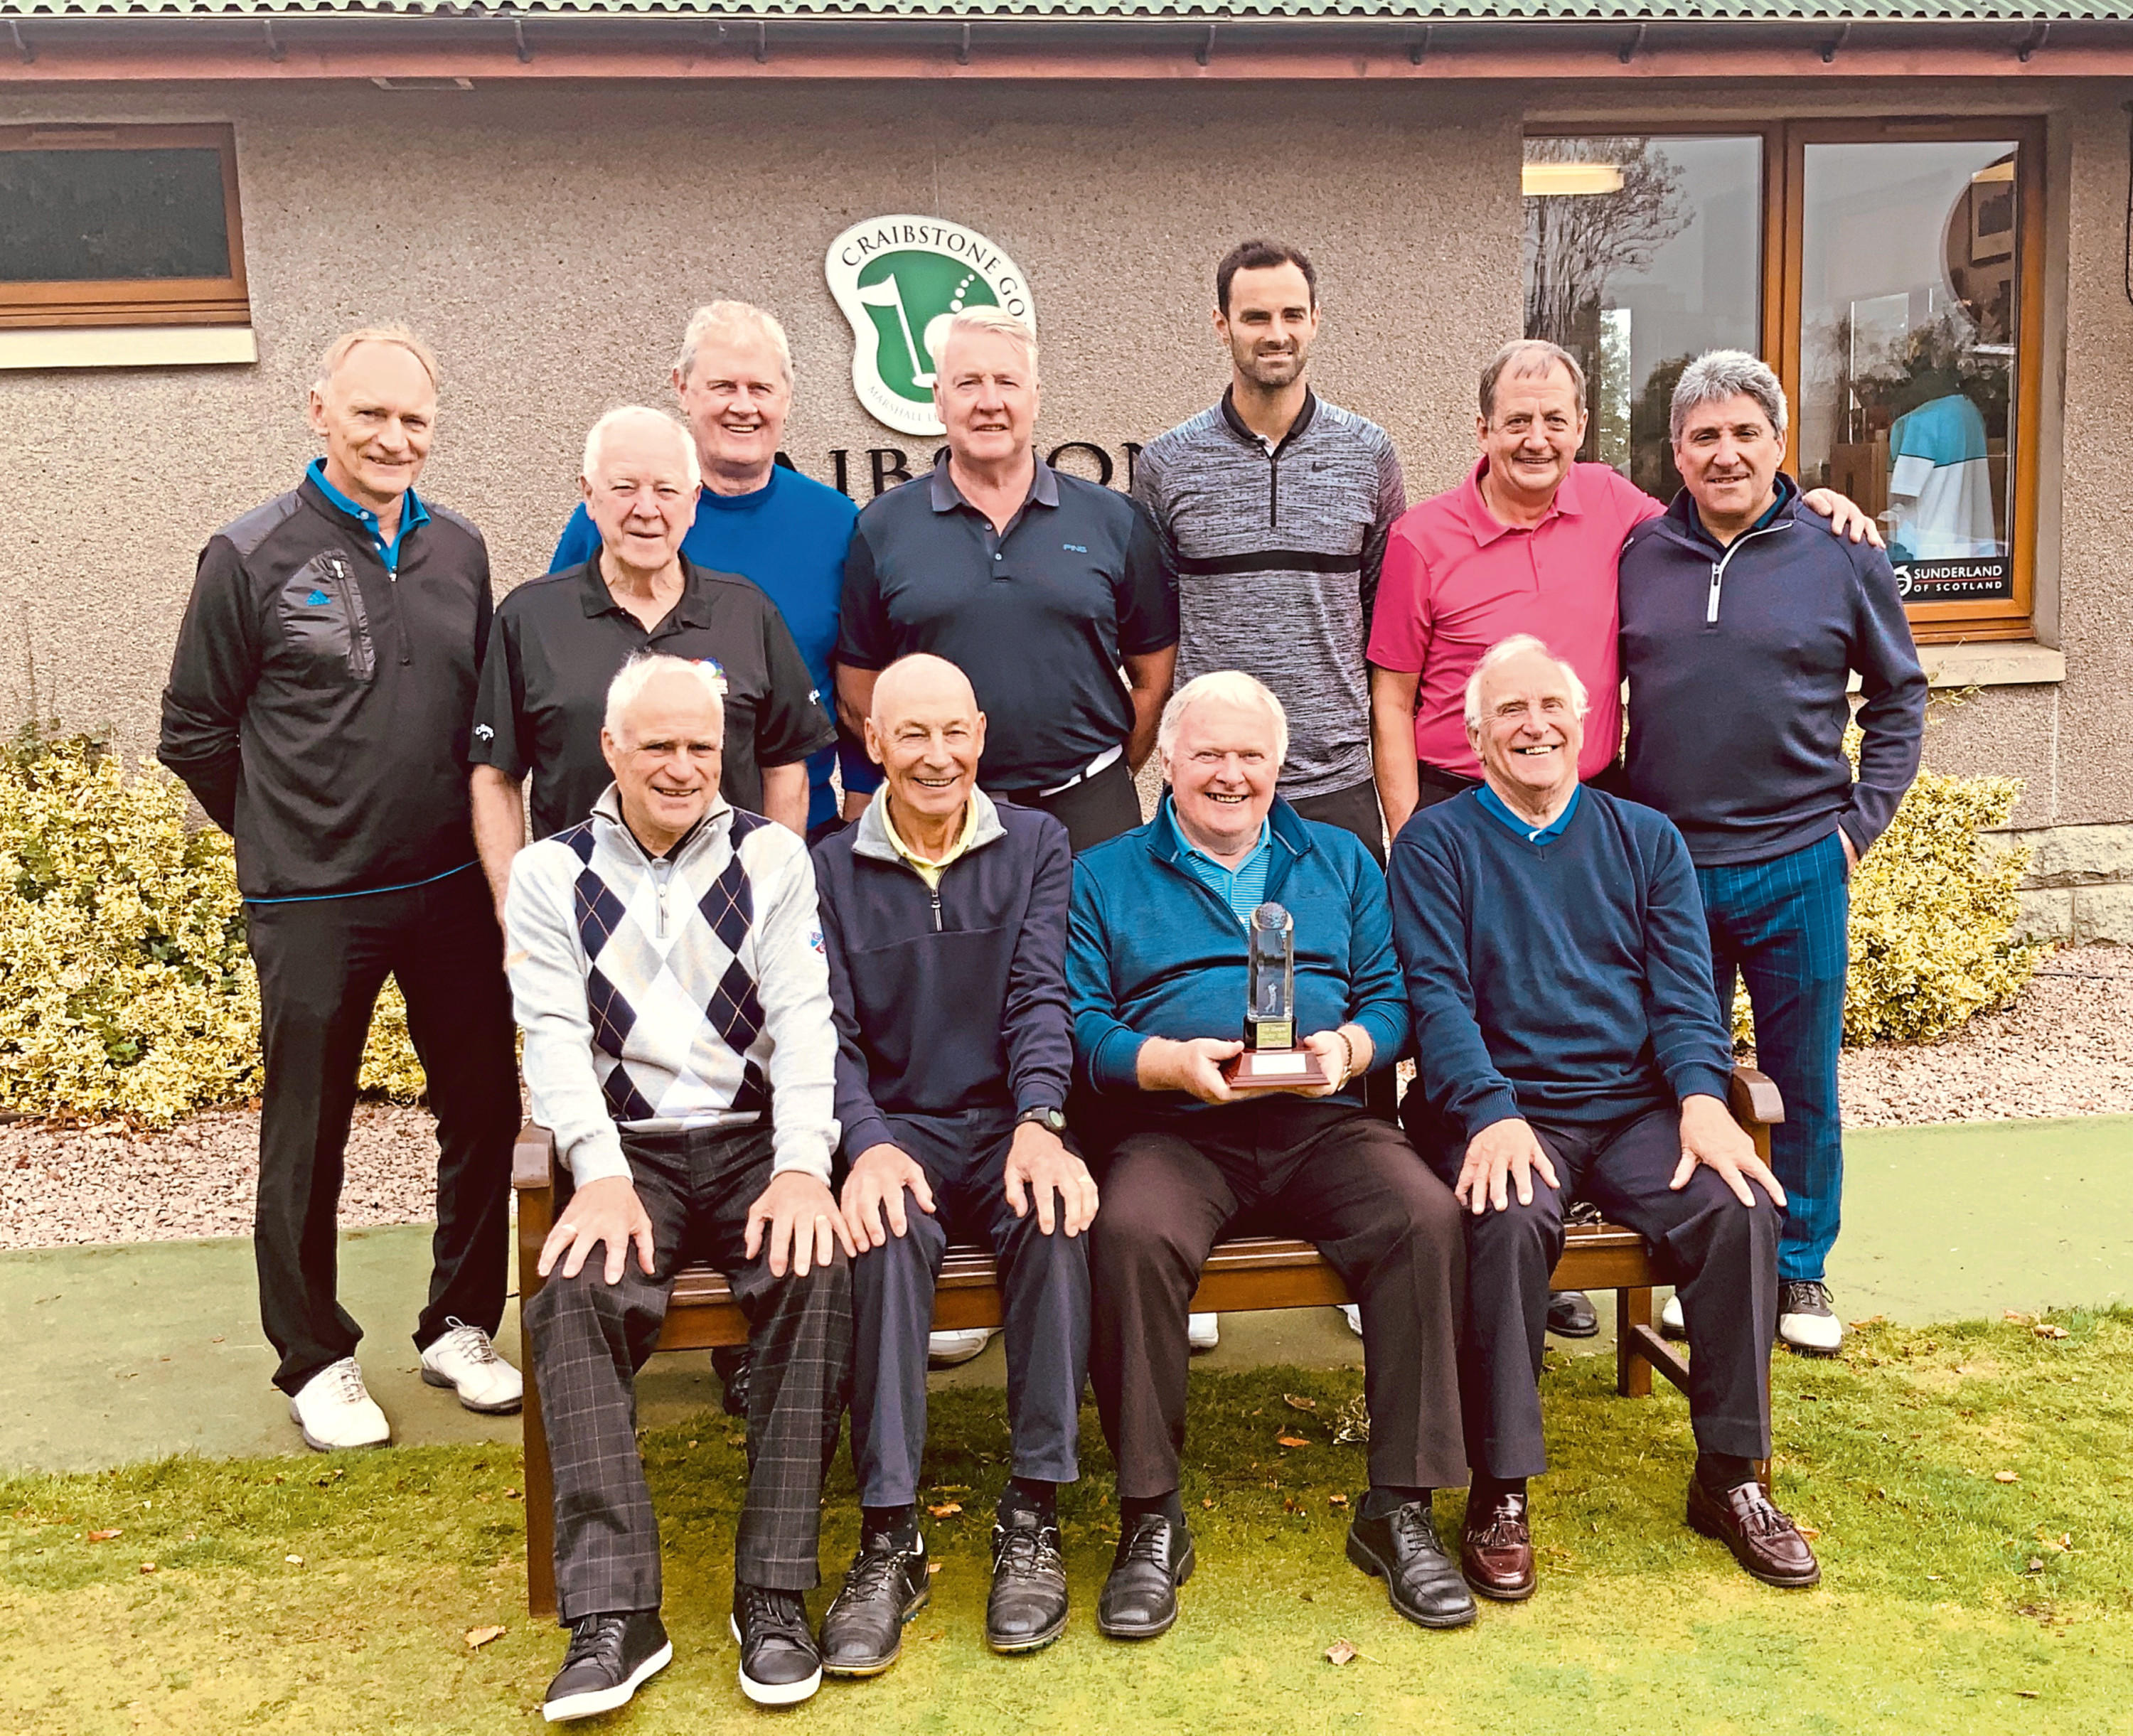 Dons legends, back row from left, Jim Leighton, Craig Brown, Walker McCall, Willie Garner, Joe Lewis, John Gardiner and Andy Dornan and, front from left, Ian Fleming, Drew Jarvie, Joe Harper and Ian Taylor